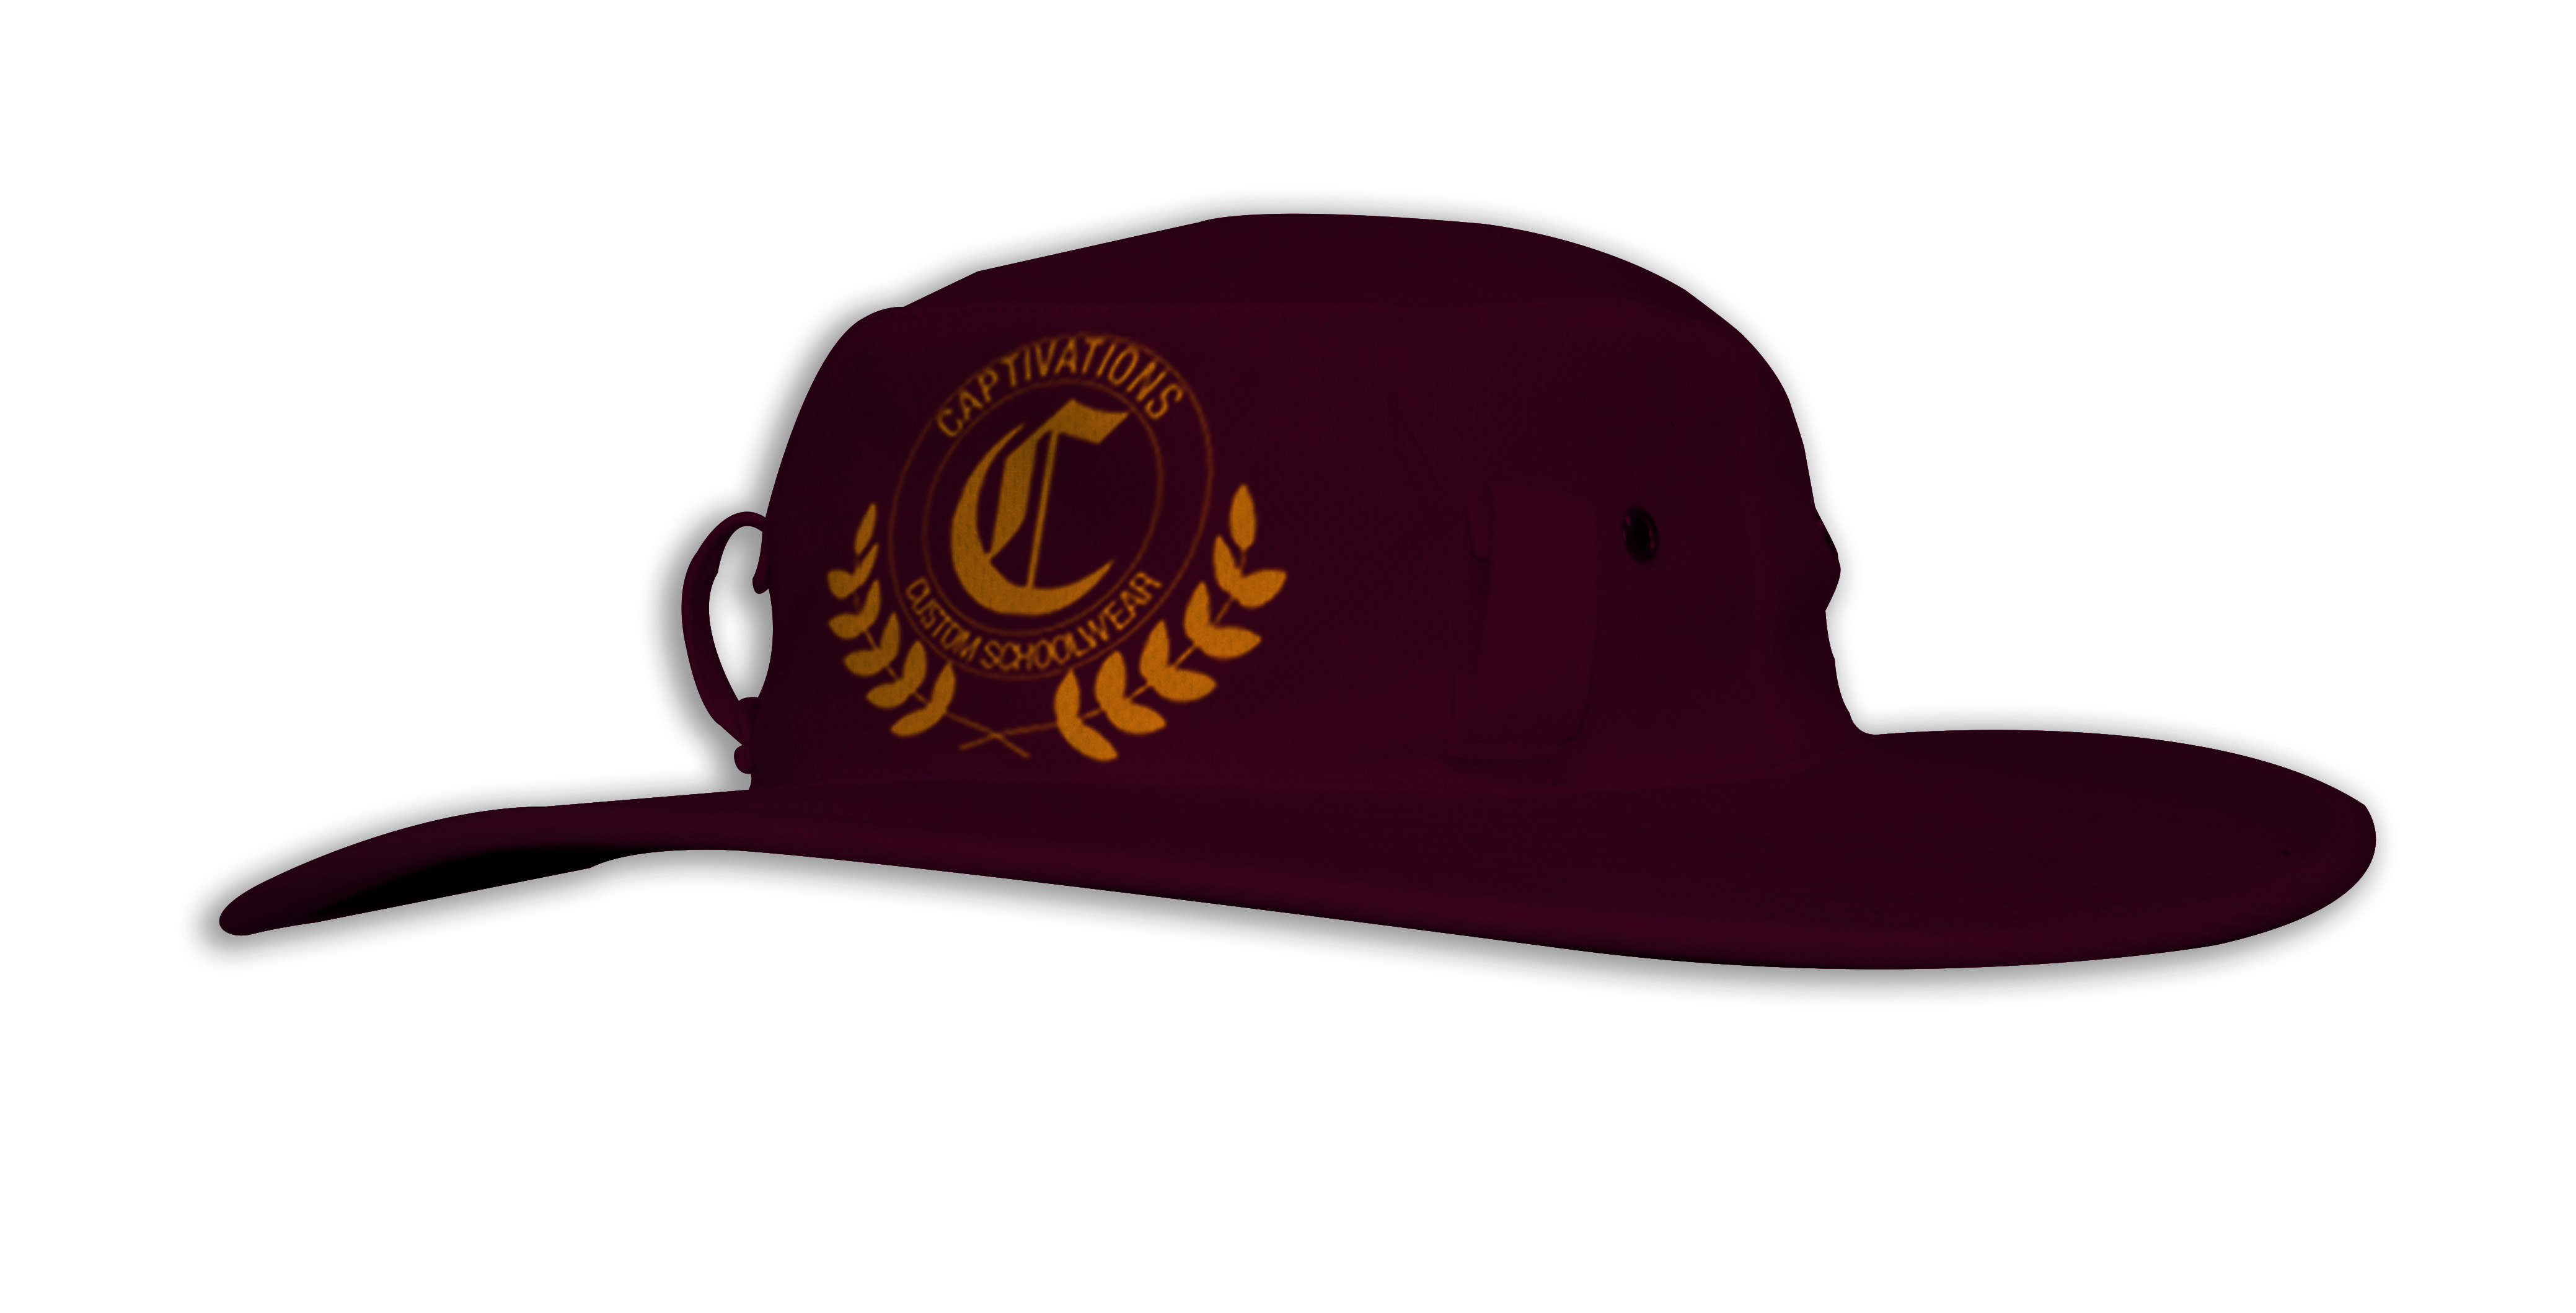 Floppy Brim Cricket Hat - Great Prices Cricket Clothing Experts ... 87e6ec7a680